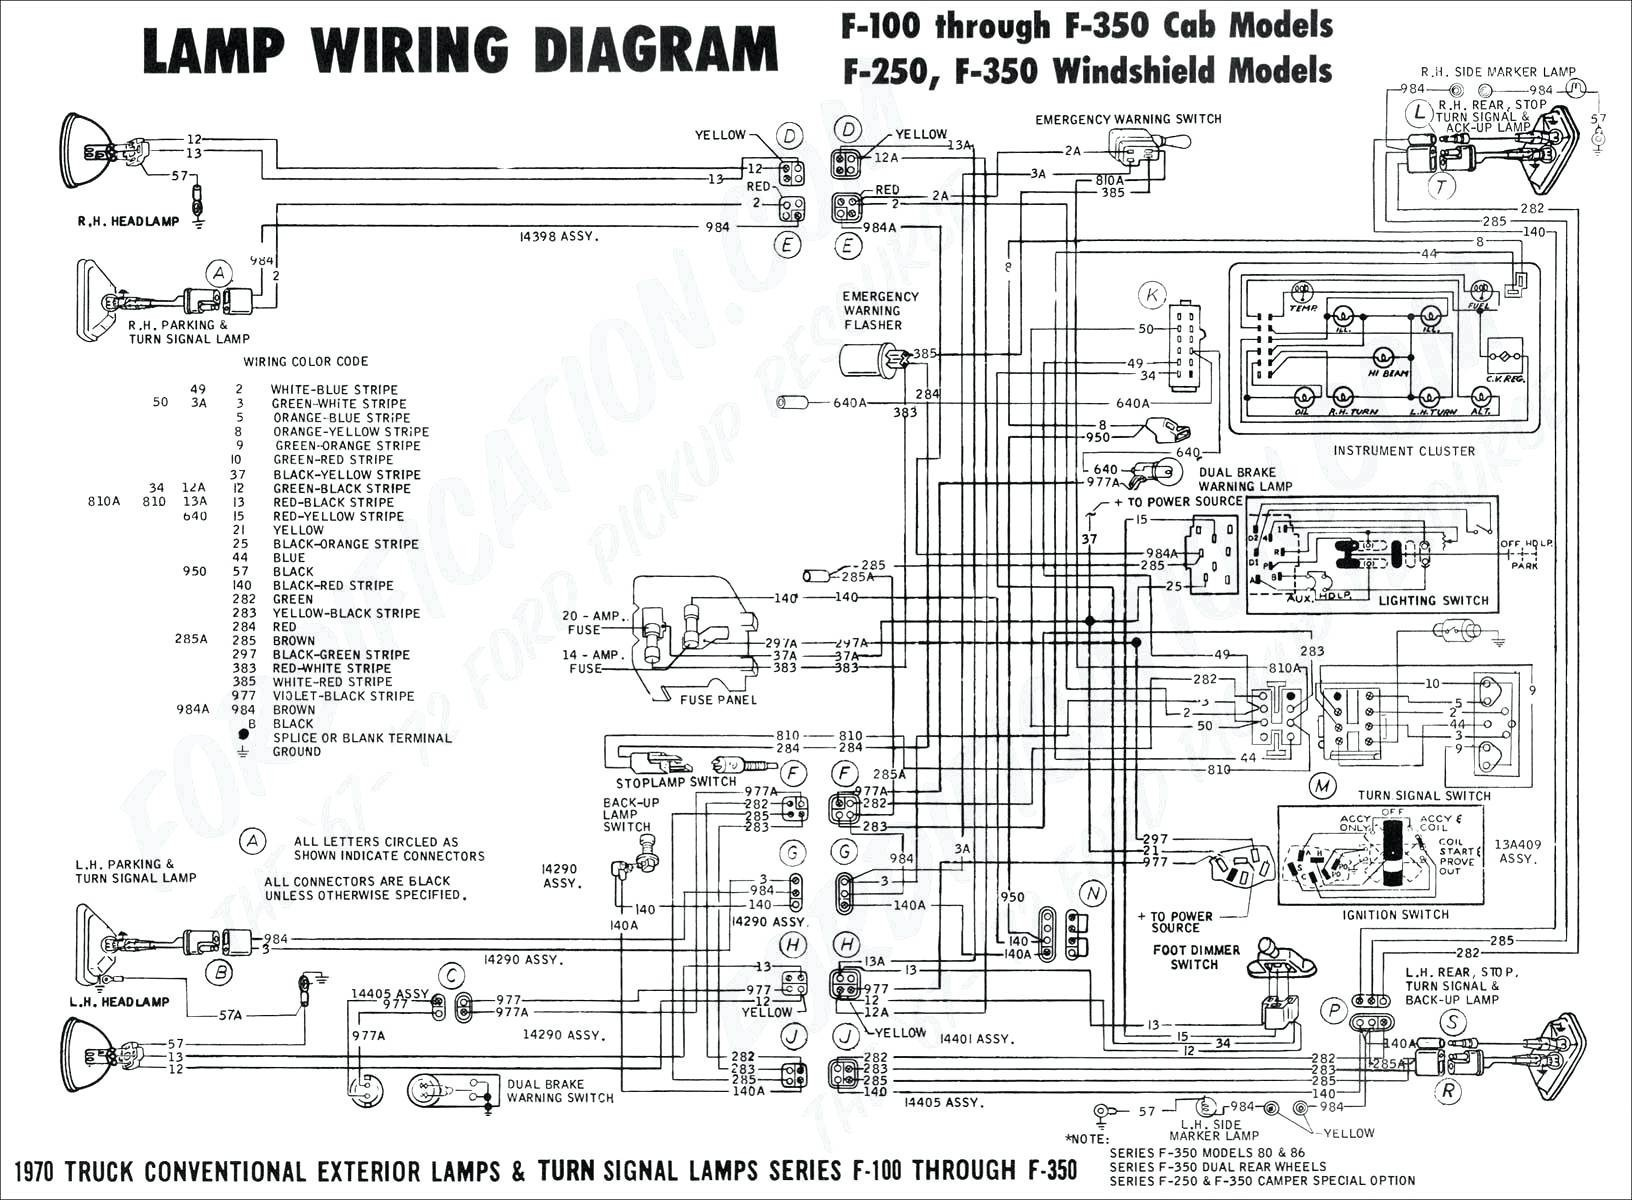 Free Wiring Diagrams for Dodge Trucks Dodge Truck Wiring Diagram Free Wiring Diagram toolbox Of Free Wiring Diagrams for Dodge Trucks Dodge Truck Stereo Wiring Diagram